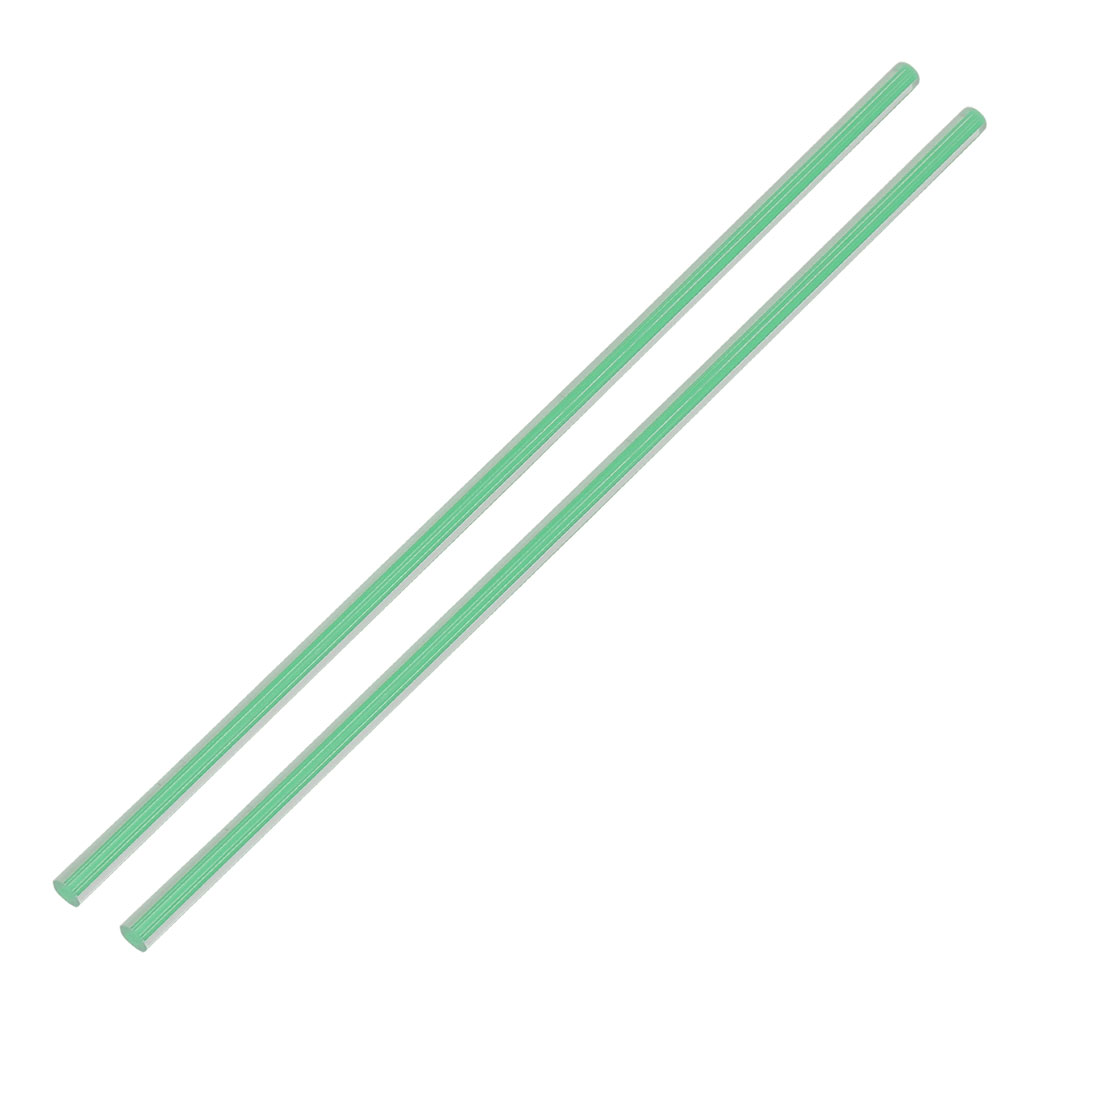 Straight Green Line Solid Acrylic Round Rod PMMA Bar 250mmx6mm 2pcs